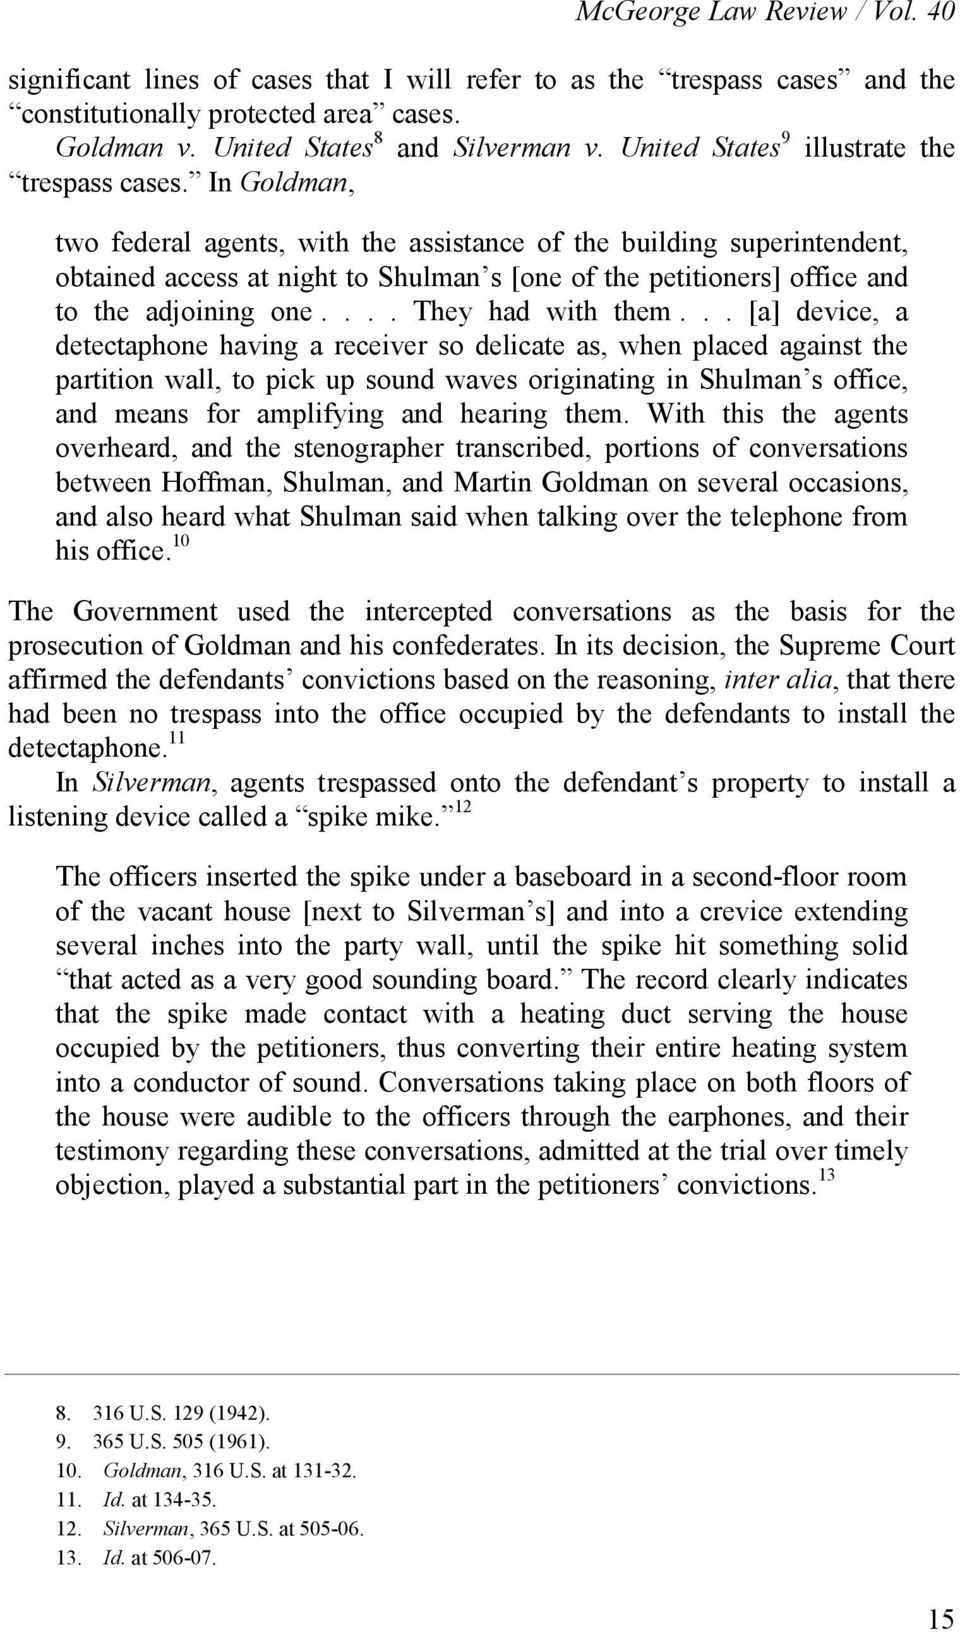 In Goldman, two federal agents, with the assistance of the building superintendent, obtained access at night to Shulman s [one of the petitioners] office and to the adjoining one.... They had with them.